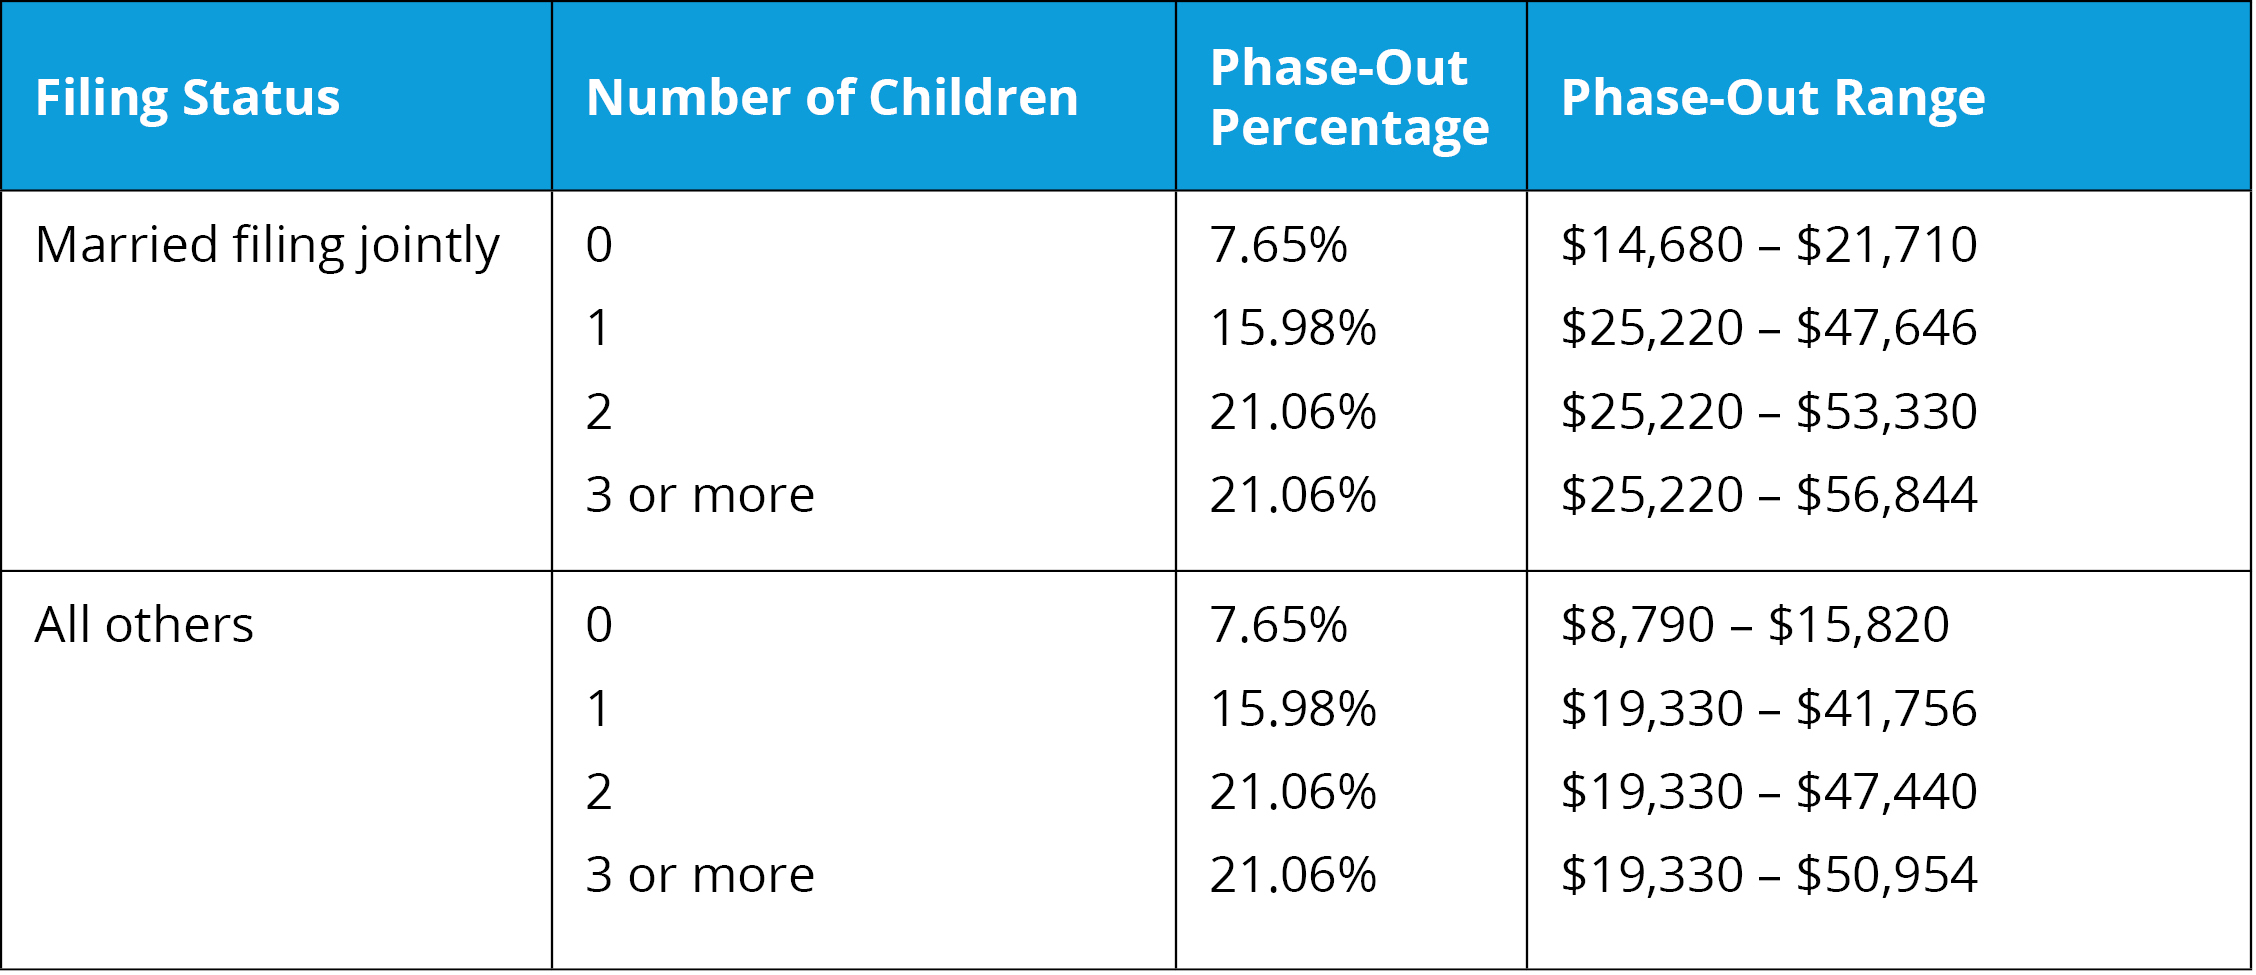 Phase-Out Ranges Table